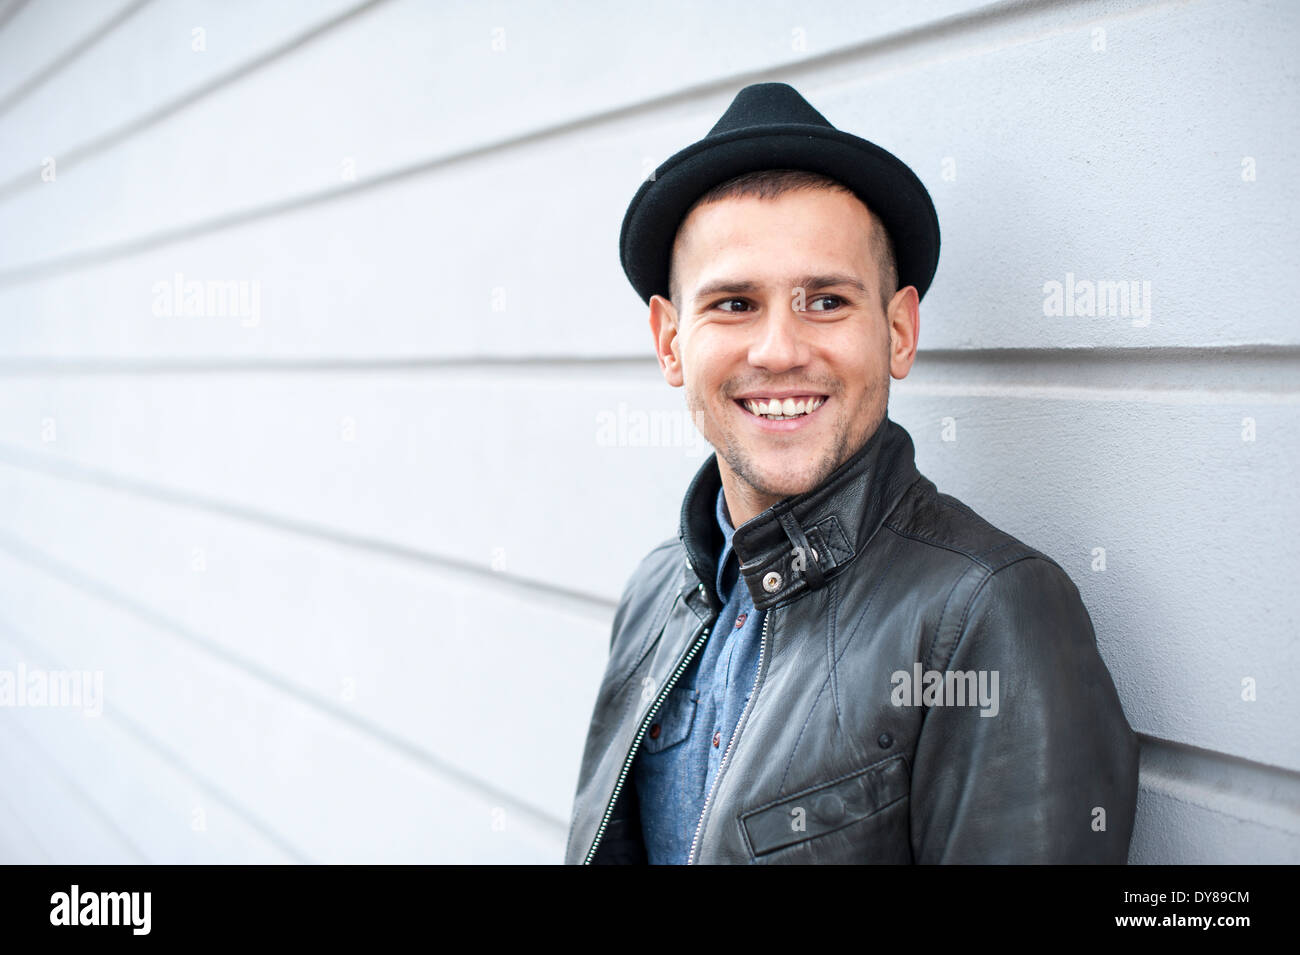 Young man with hat - Stock Image